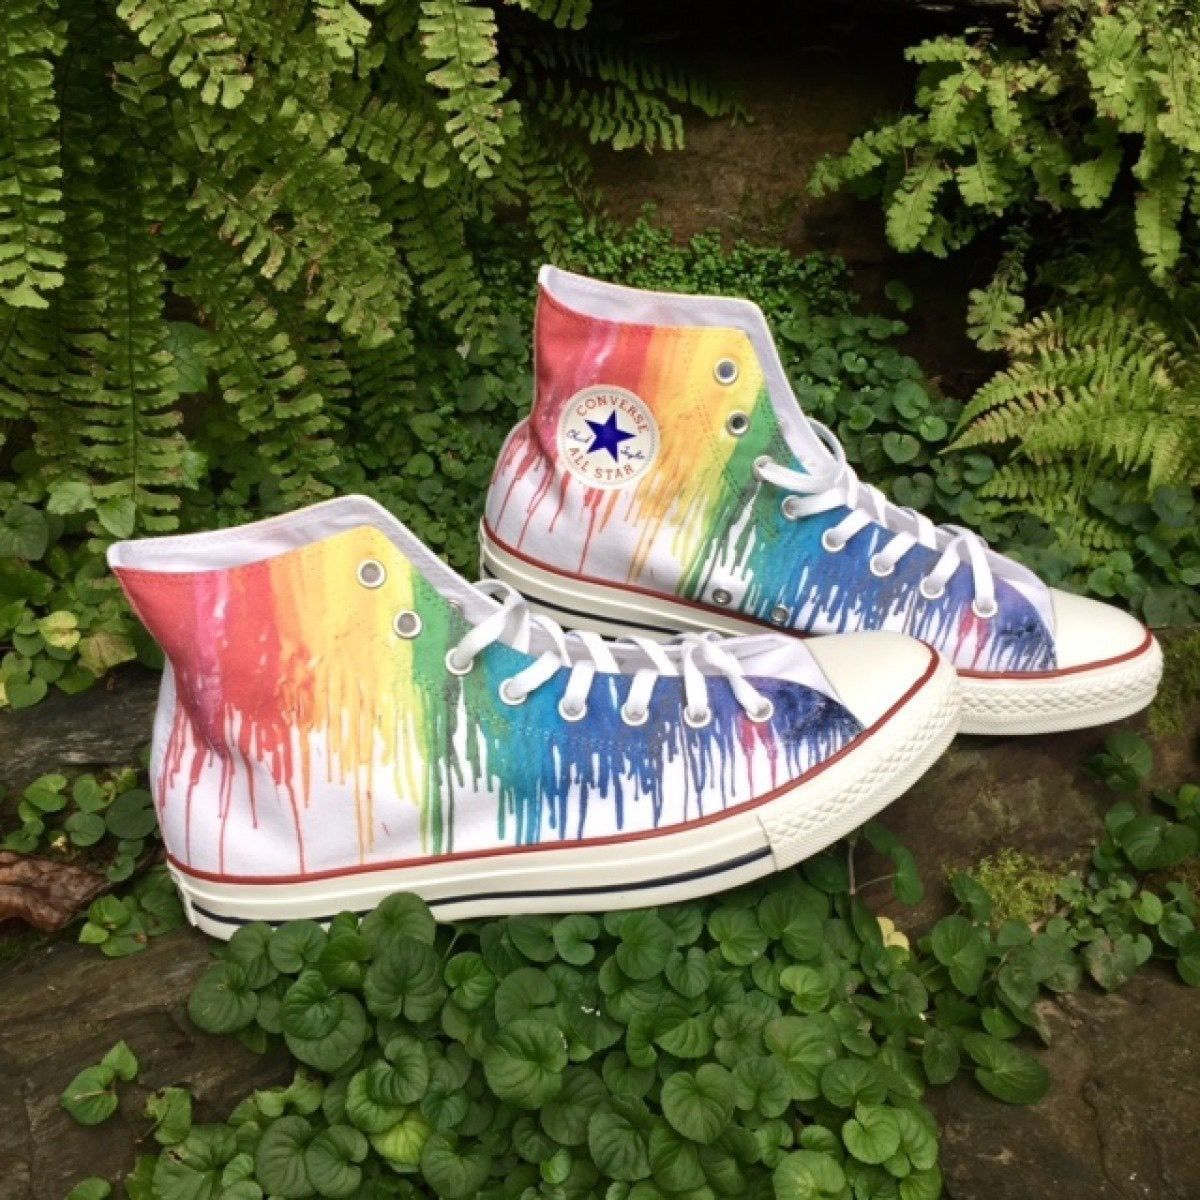 Converse All Star High Top Chuck Taylor Rainbow LGBTQ Pride